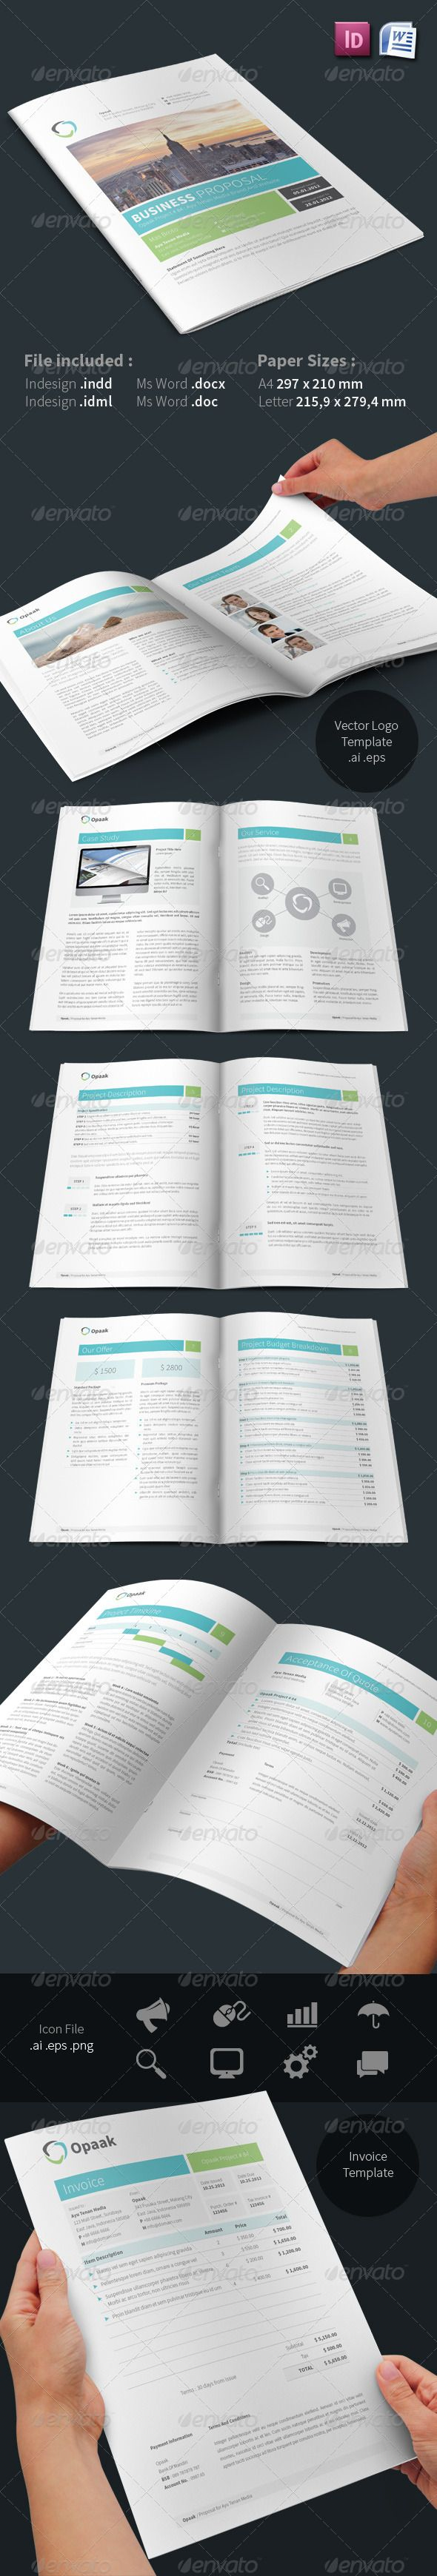 Commercial Proposal Format Inspiration 504 Best Business Proposal Images On Pinterest  Proposal Templates .